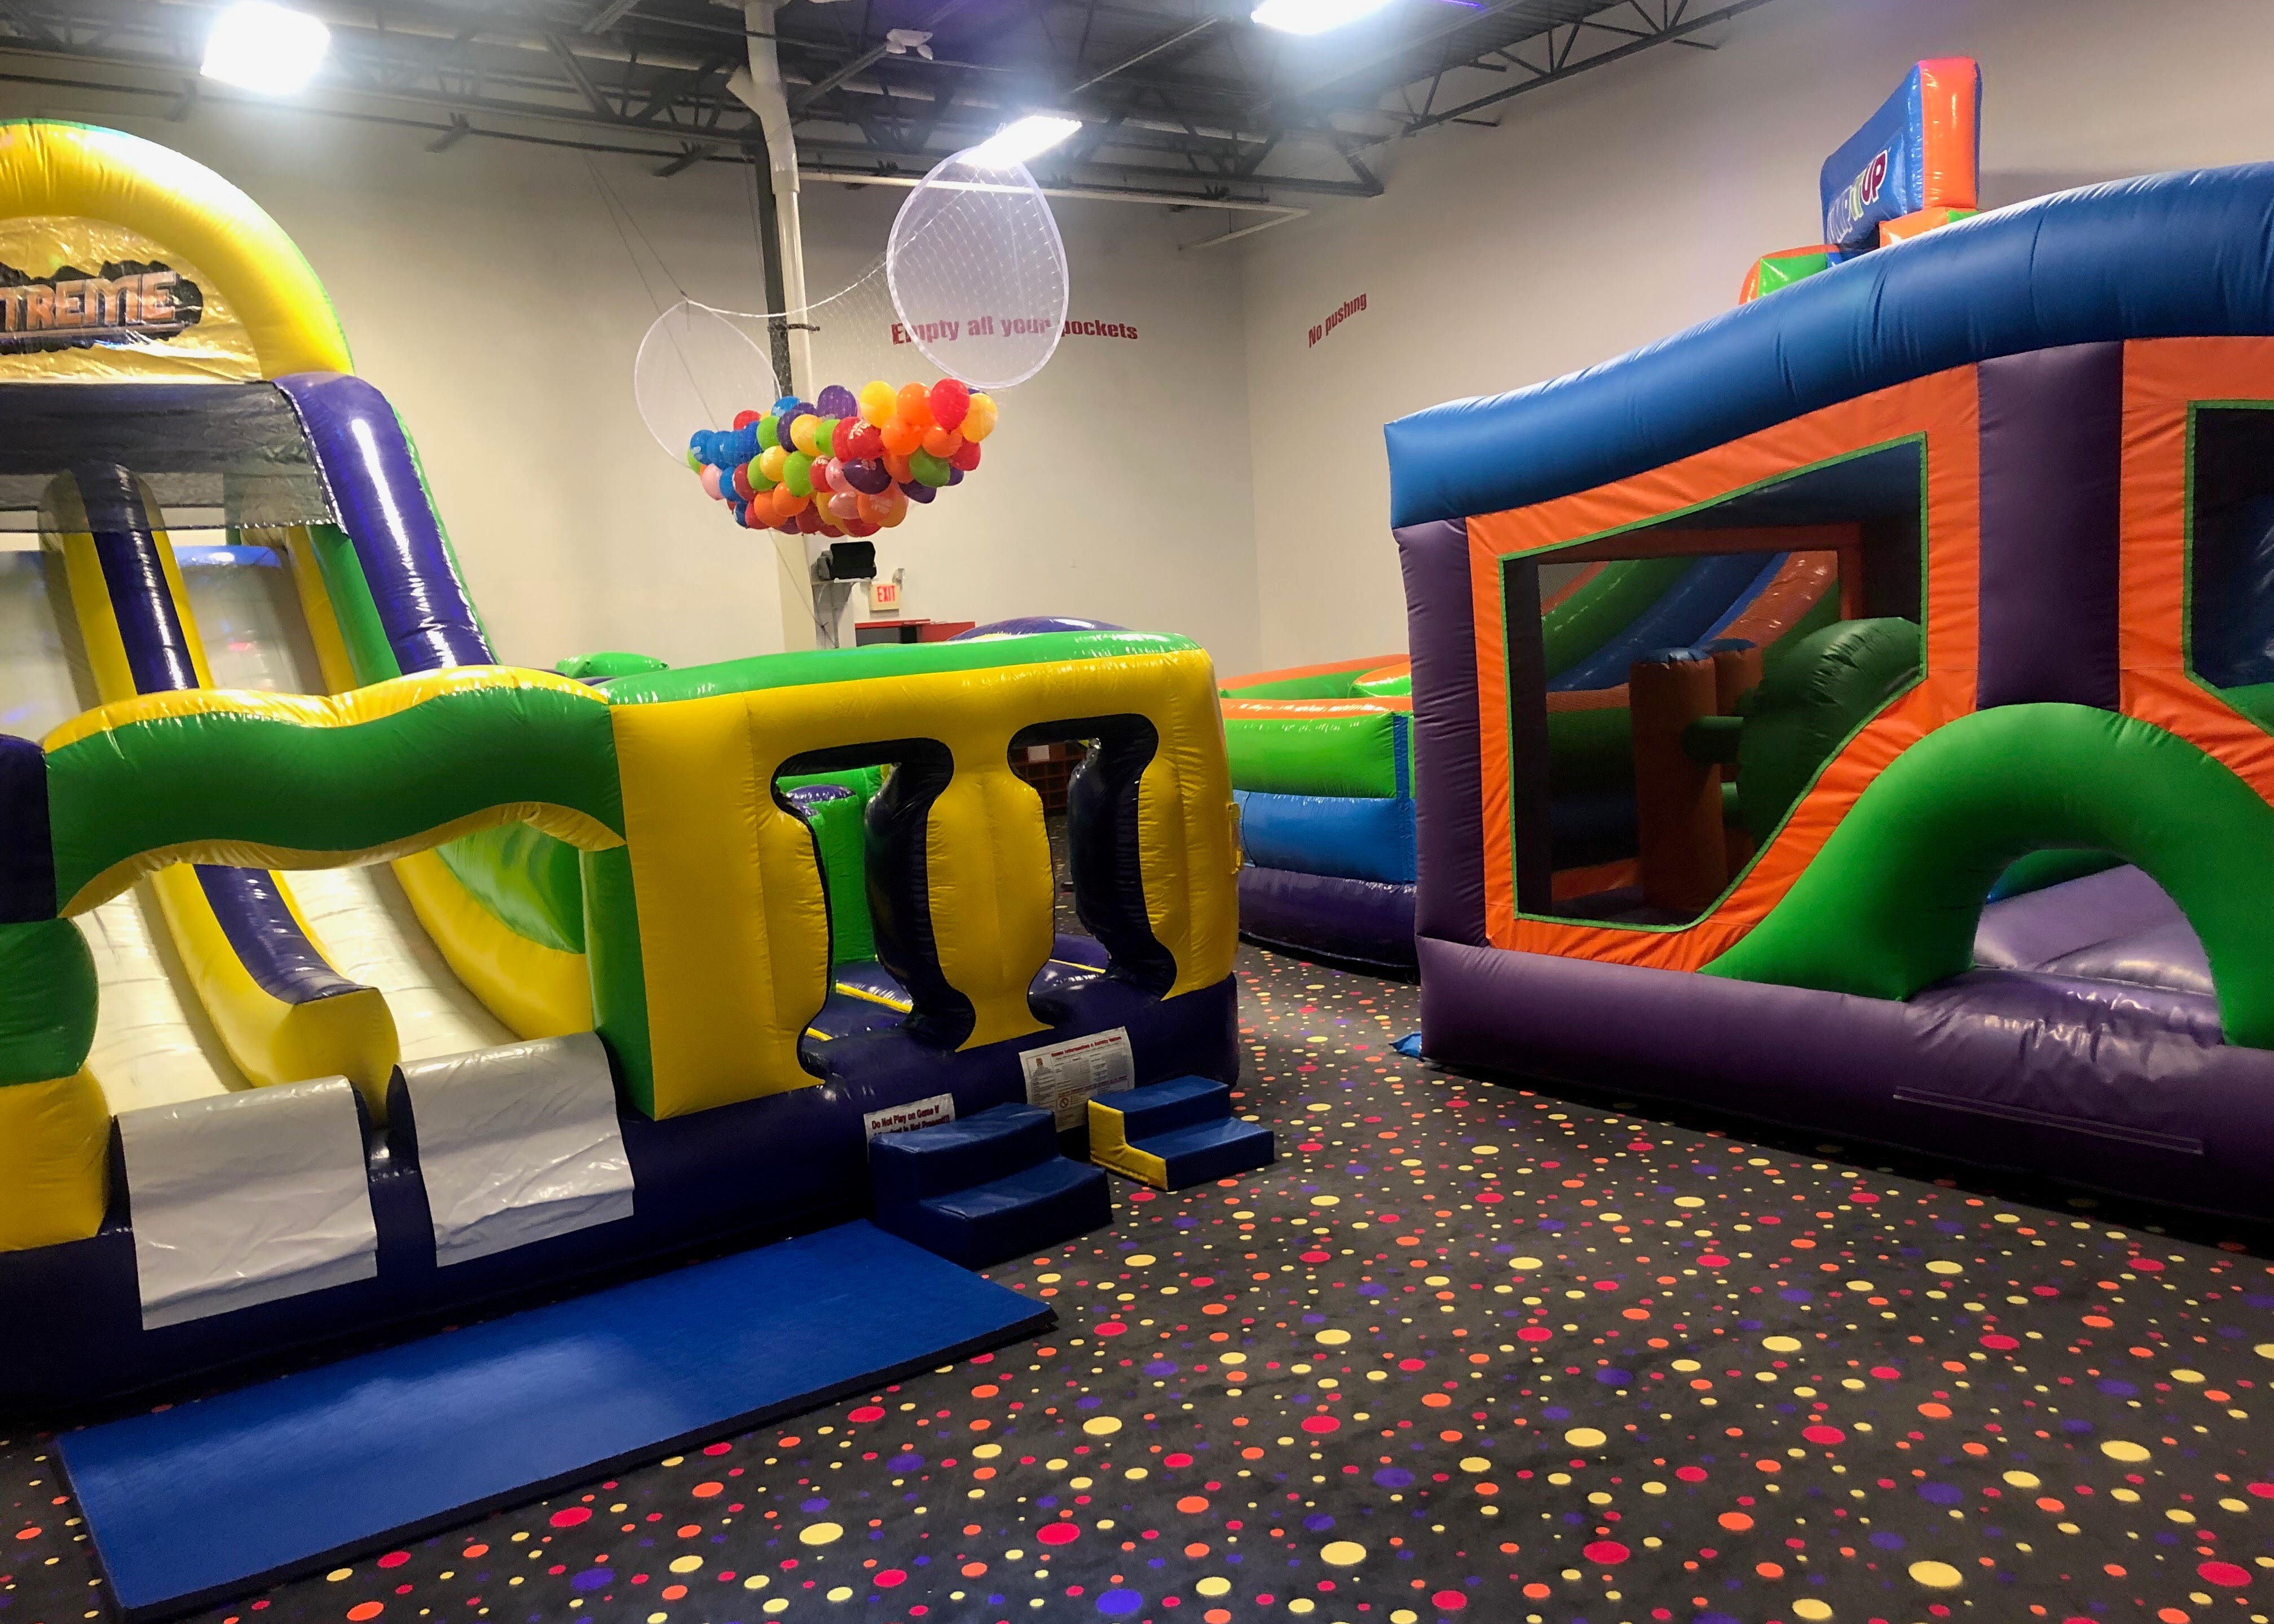 Pump It Up birthday party arena space with large inflatable rides for private birthday parties.